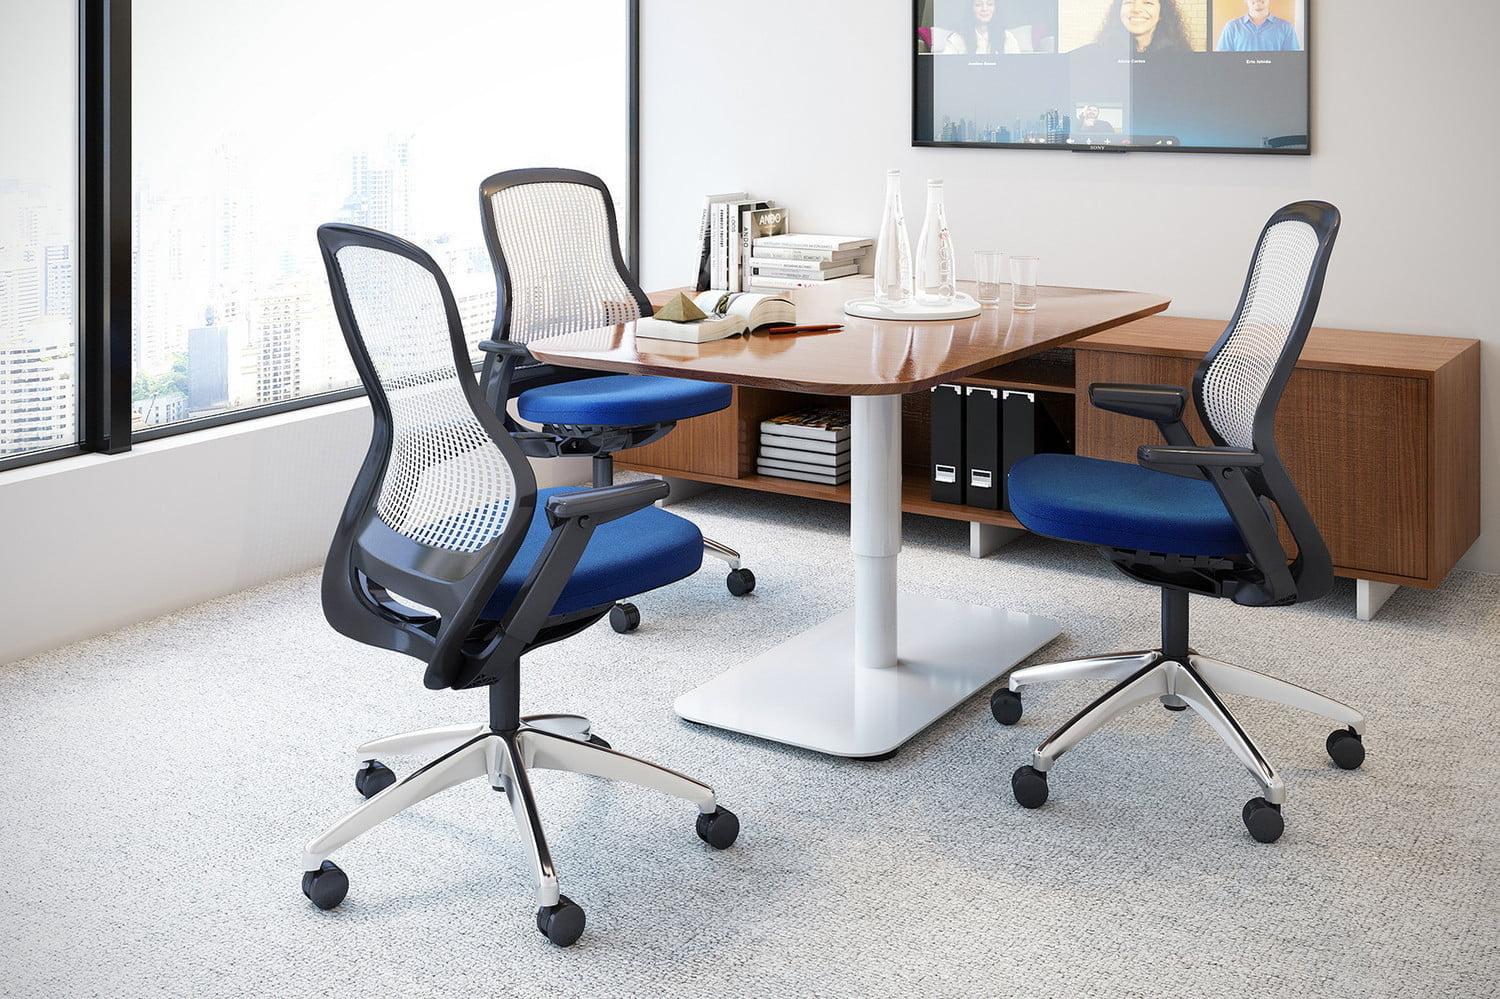 Knoll Chairs Amazon The 9 Best Desk Chairs For Home And Office Digital Trends